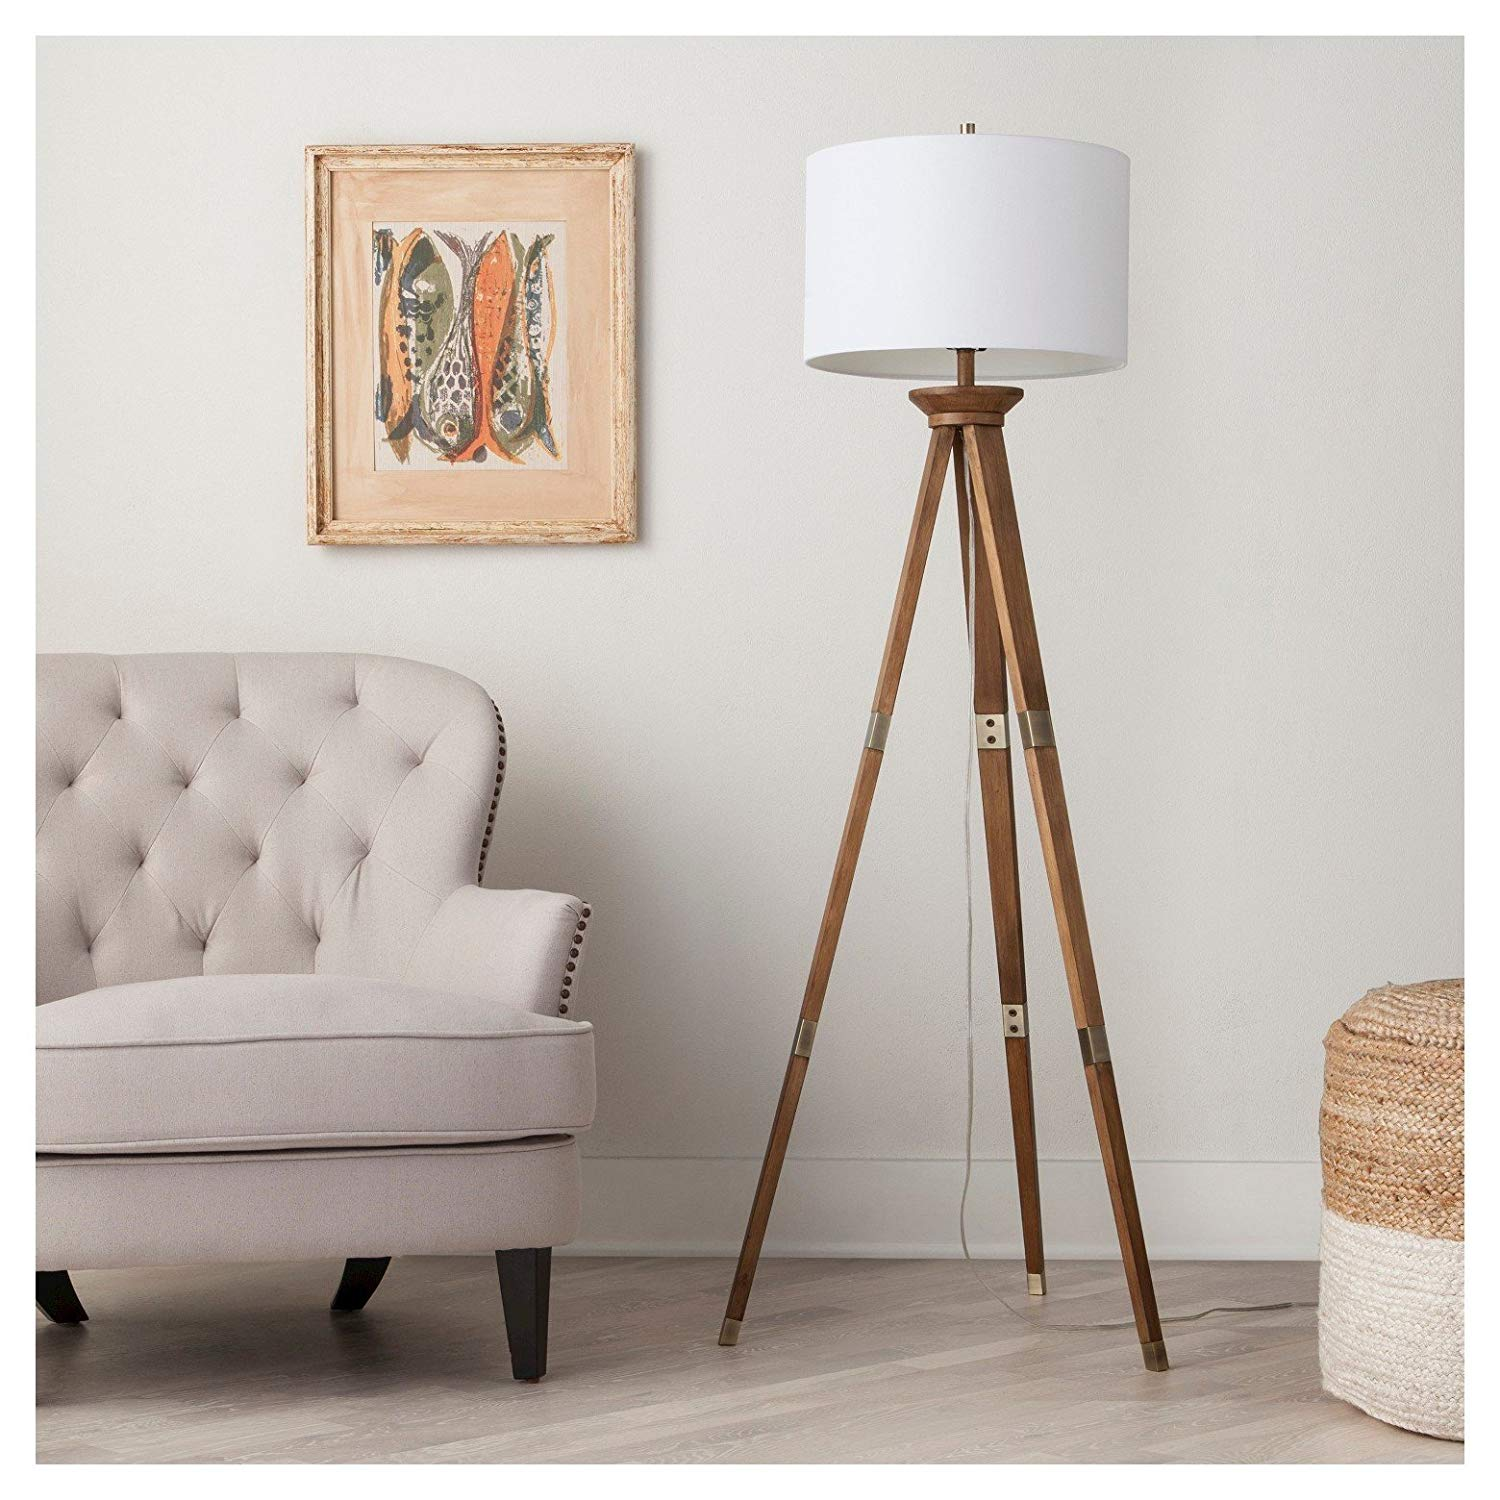 threshold oak wood tripod floor lamp brass accent spotlight table west elm faux fur throw target outdoor parasol extendable bedroom lamps with usb ports round dining diy crate end